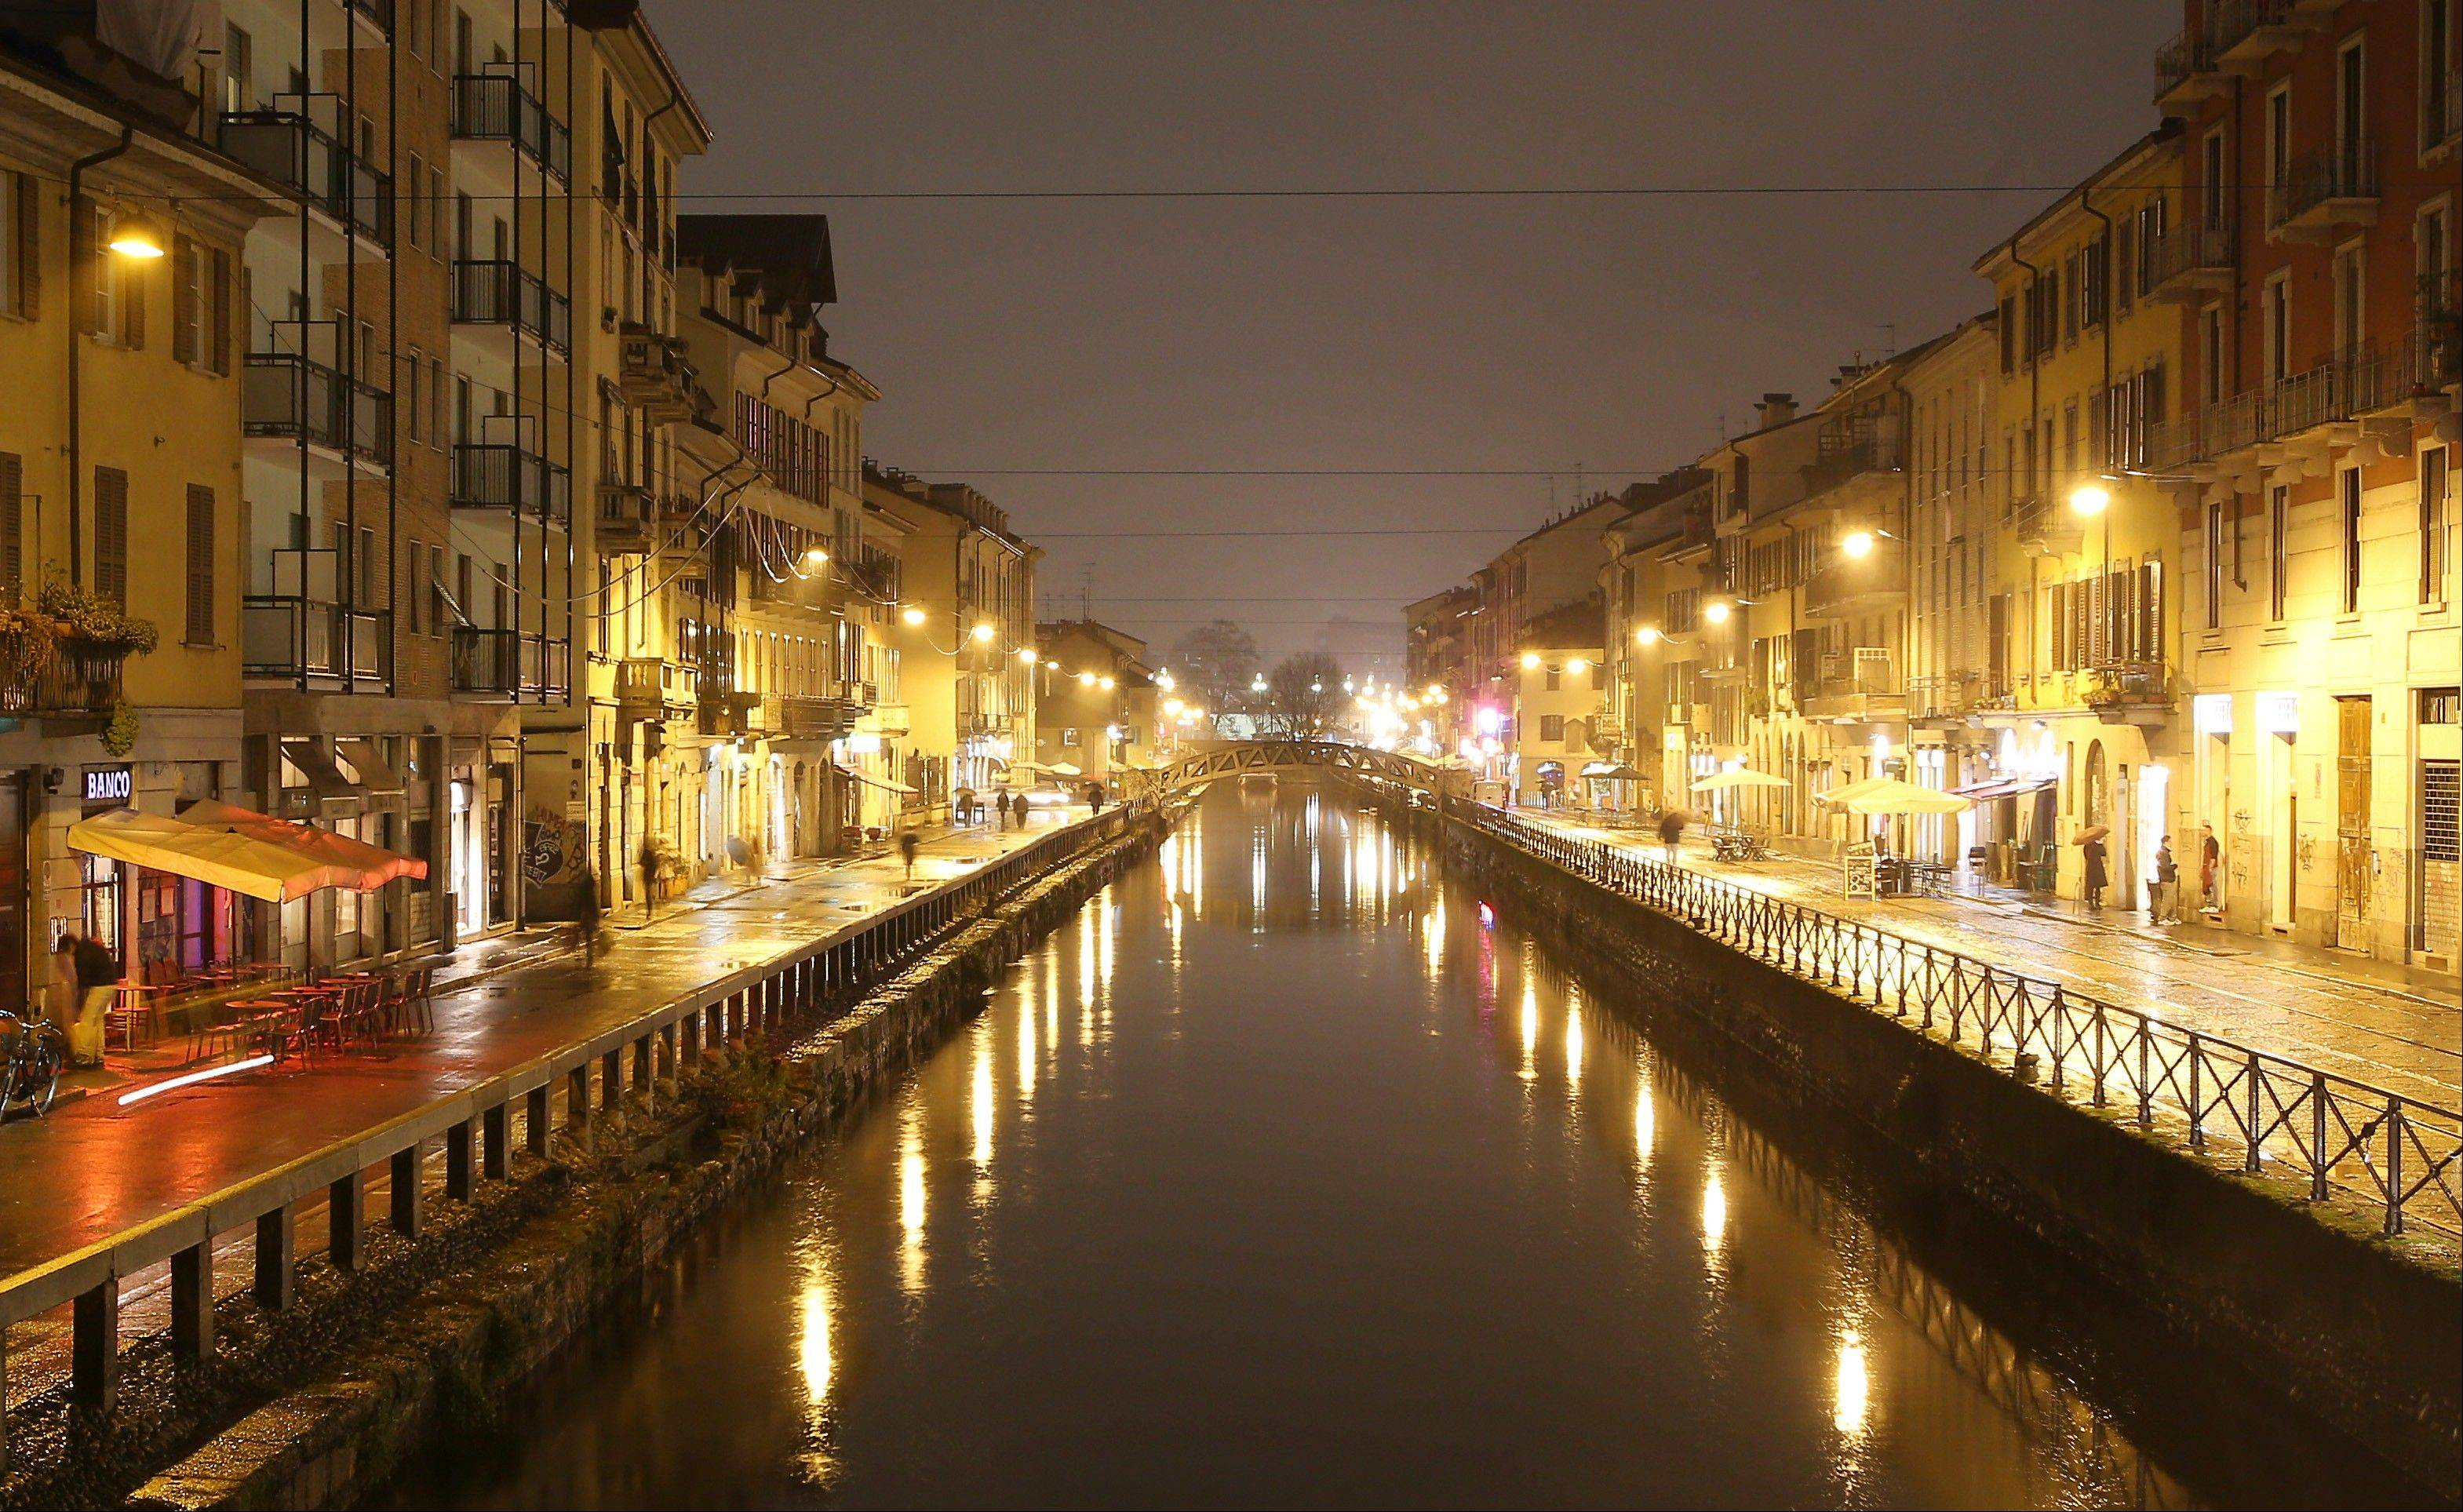 The Naviglio water canals are the center of Milan's night life.